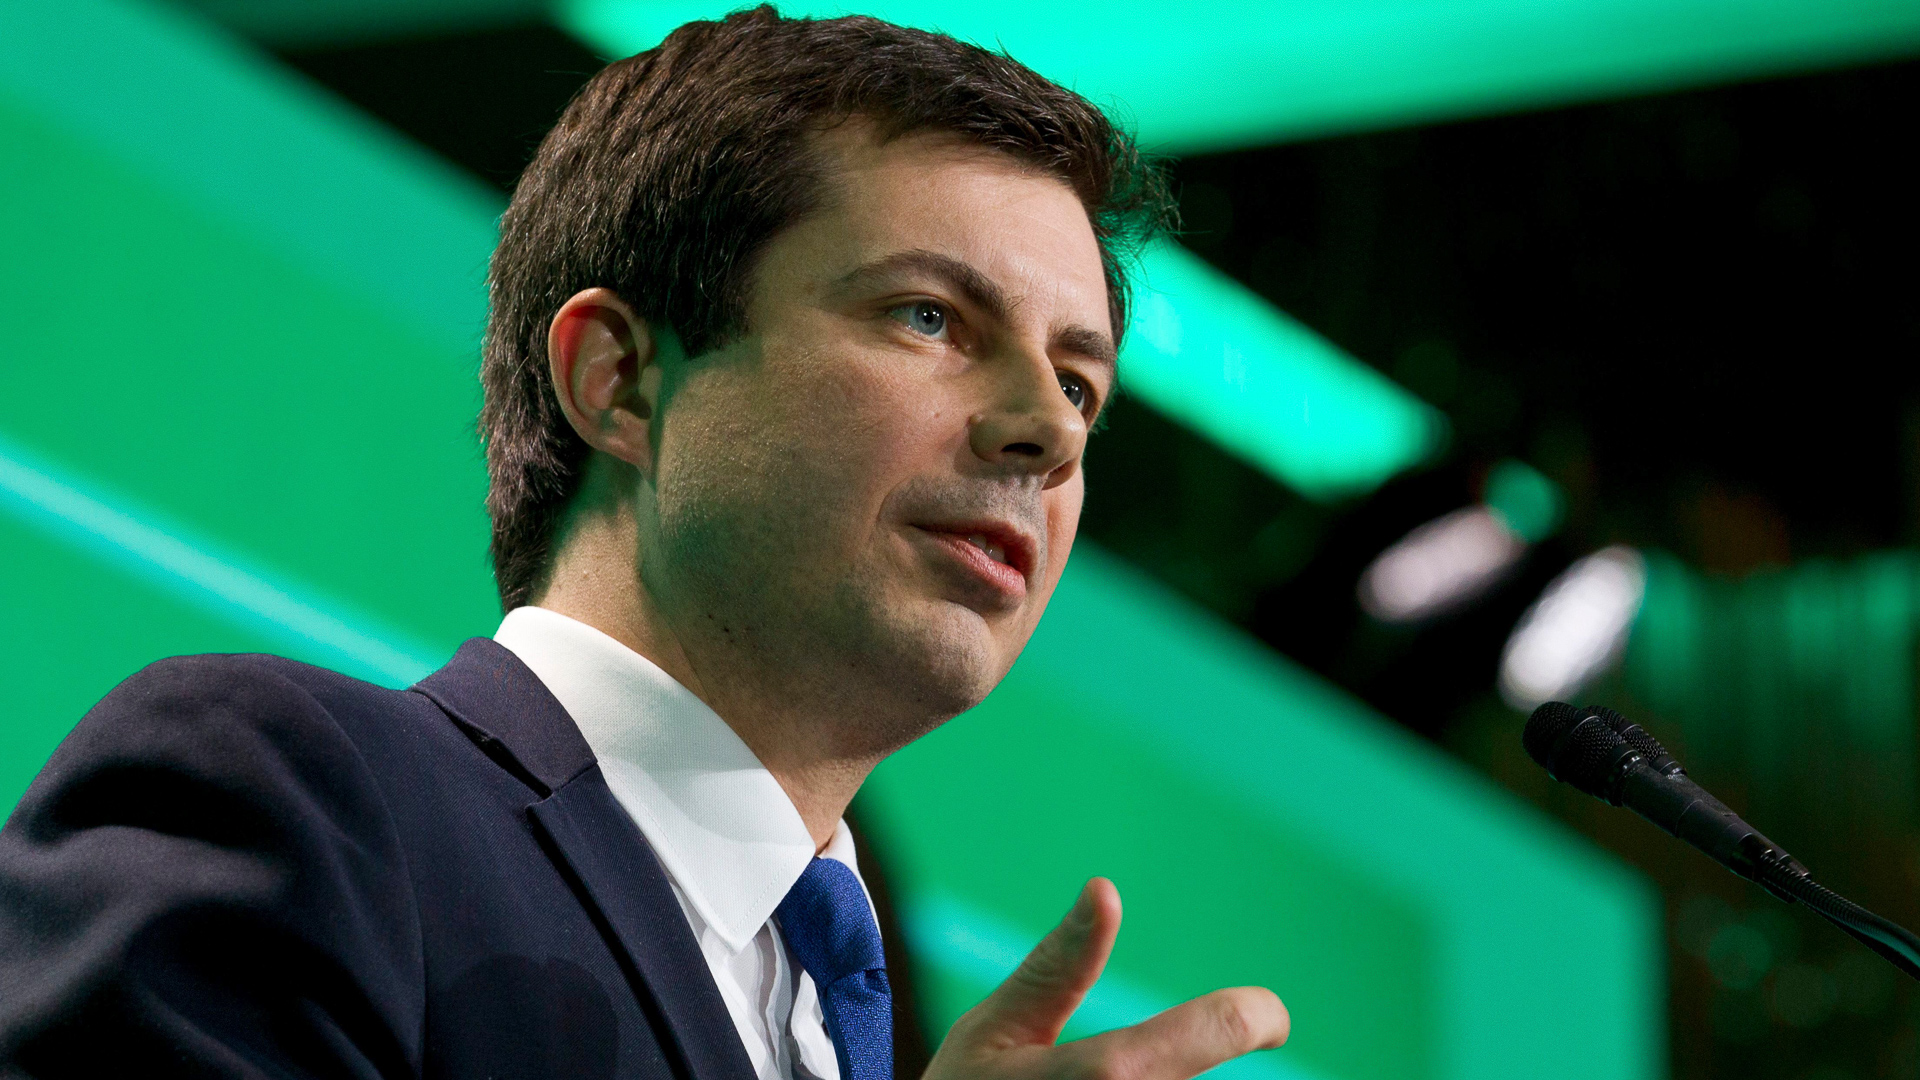 Pete Buttigieg Net Worth